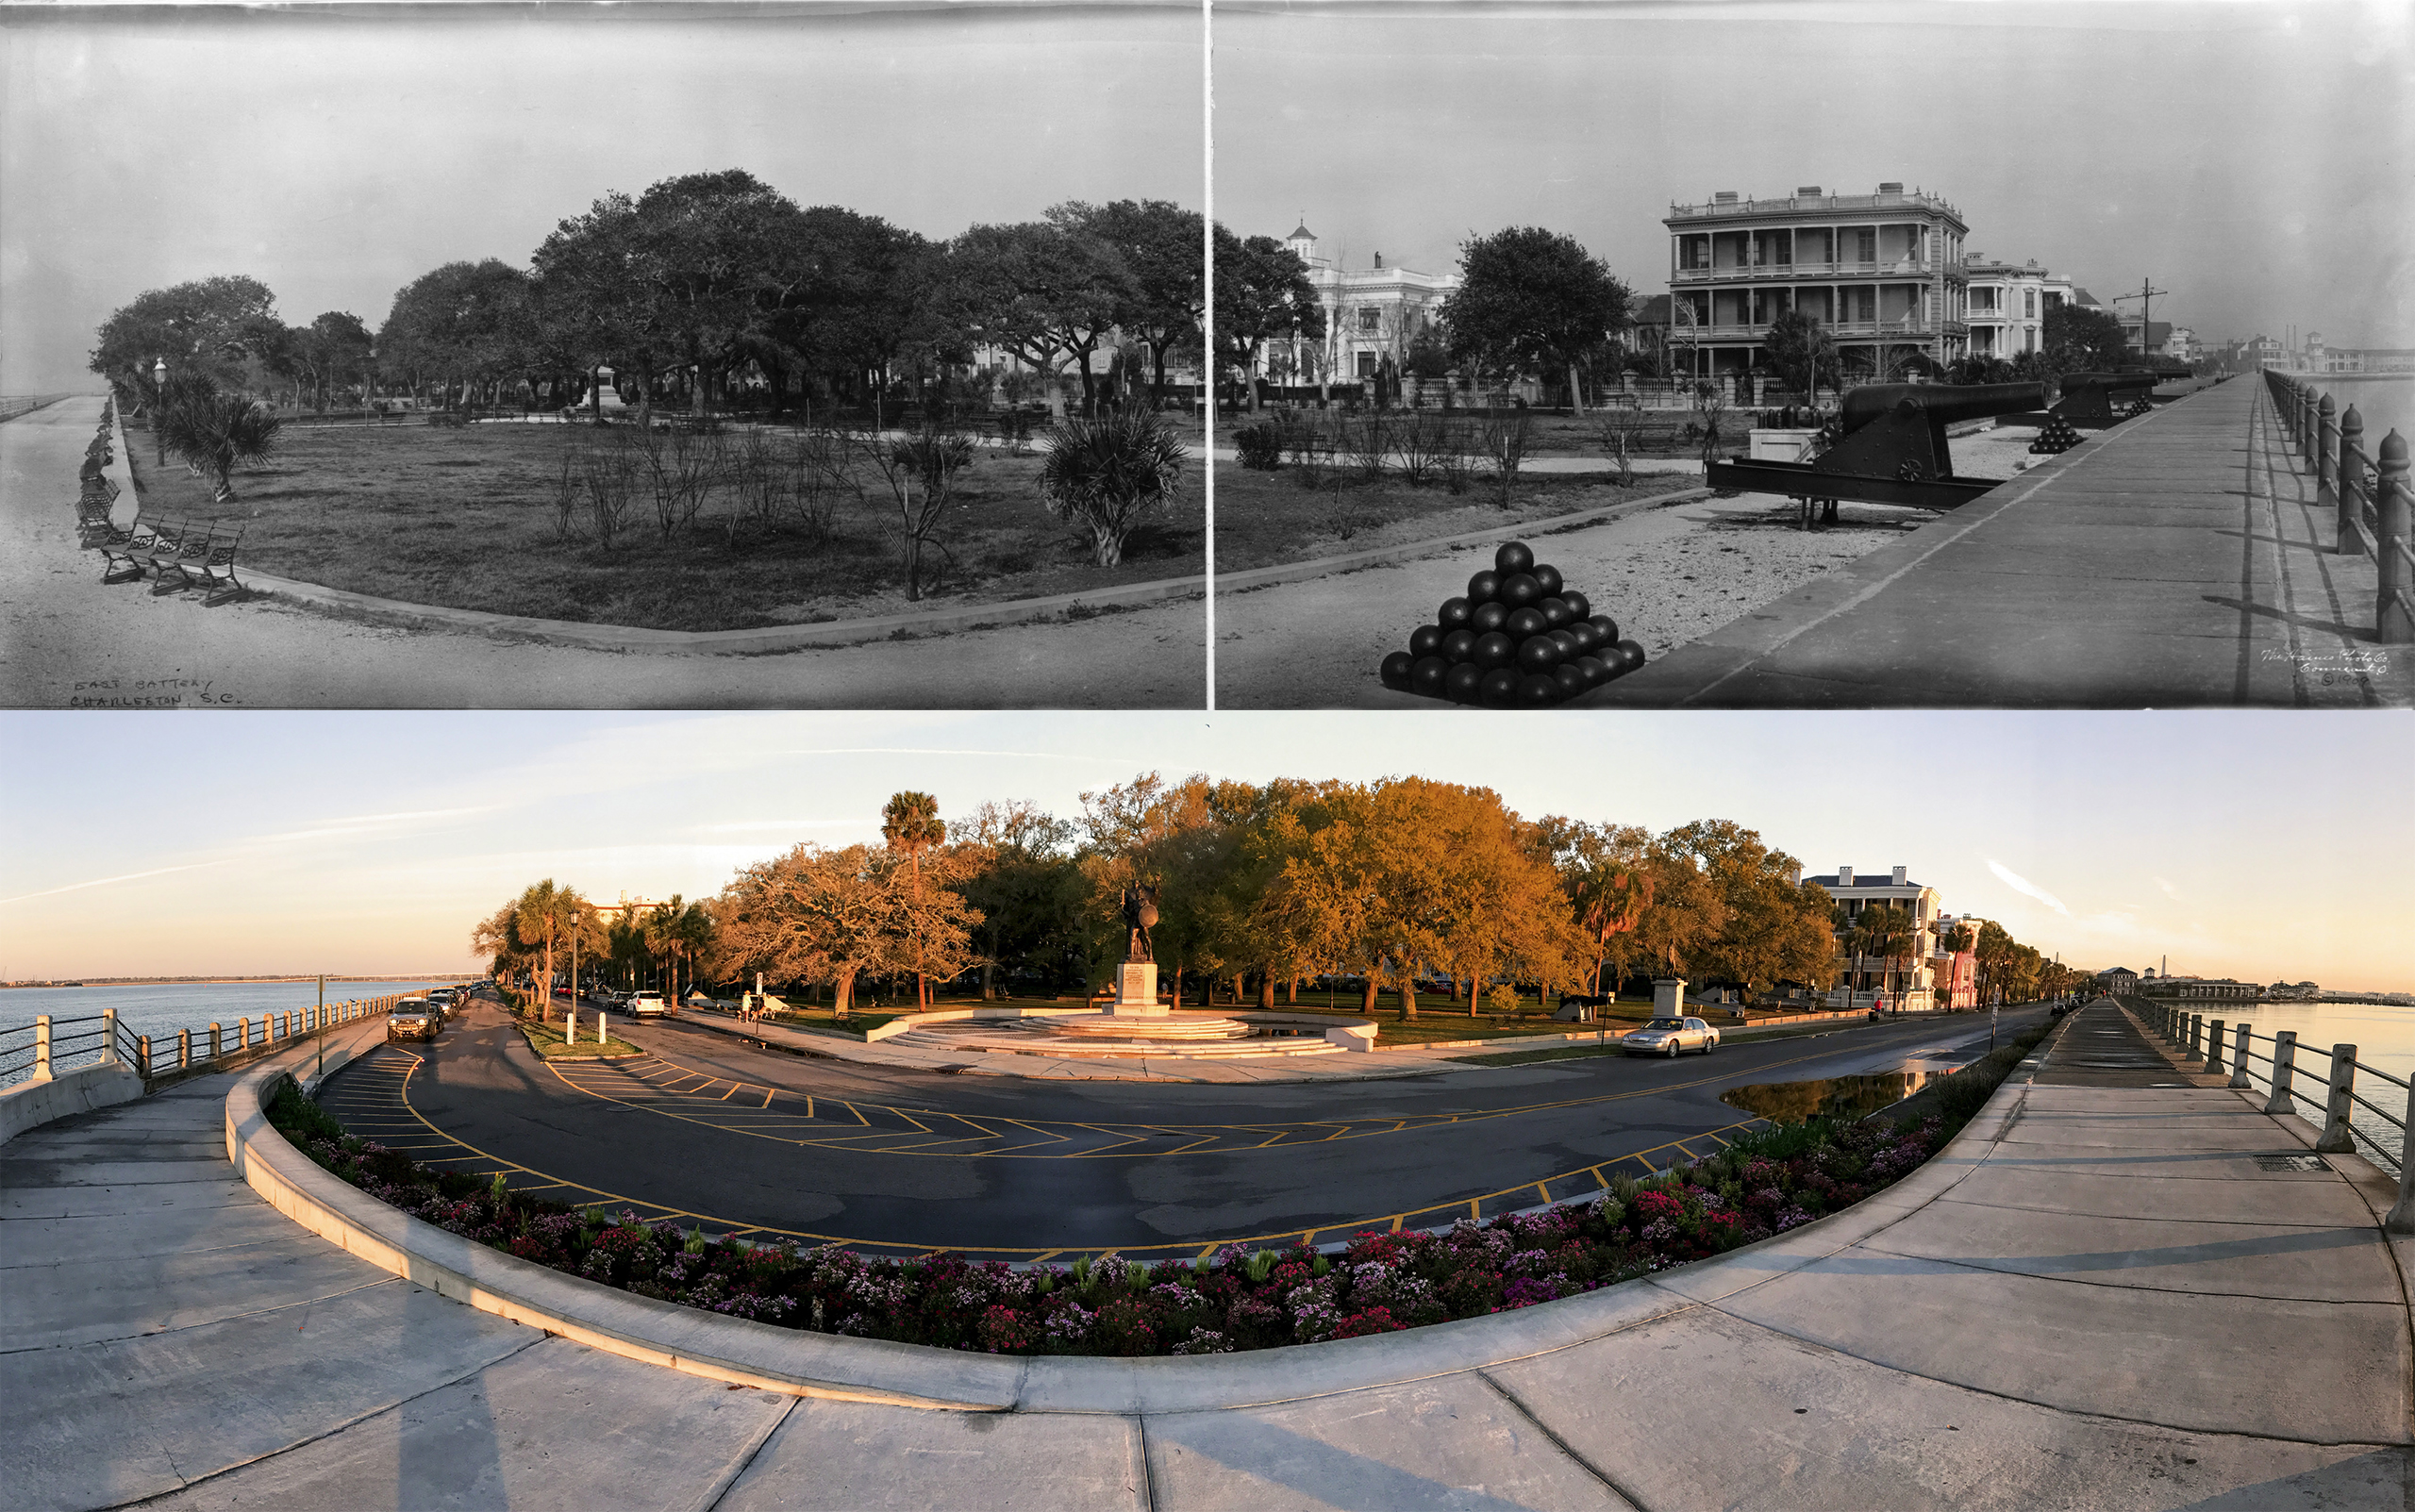 THE BATTERY: The trees in White Point Garden, which was planned by the city in 1837 as a public park, are taller now than in 1909 and block the view of the Villa Margherita on South Battery, which then still had a cupola. There are more monuments, most noticeably the colossal bronze statue dedicated to the Confederate Defenders of Charleston in 1932. The multi-piazza mansion built by Louis DeSaussure in 1858 still commands the waterfront; the heavy guns left from the Civil War-era Battery Ramsay remain peacefully at rest.